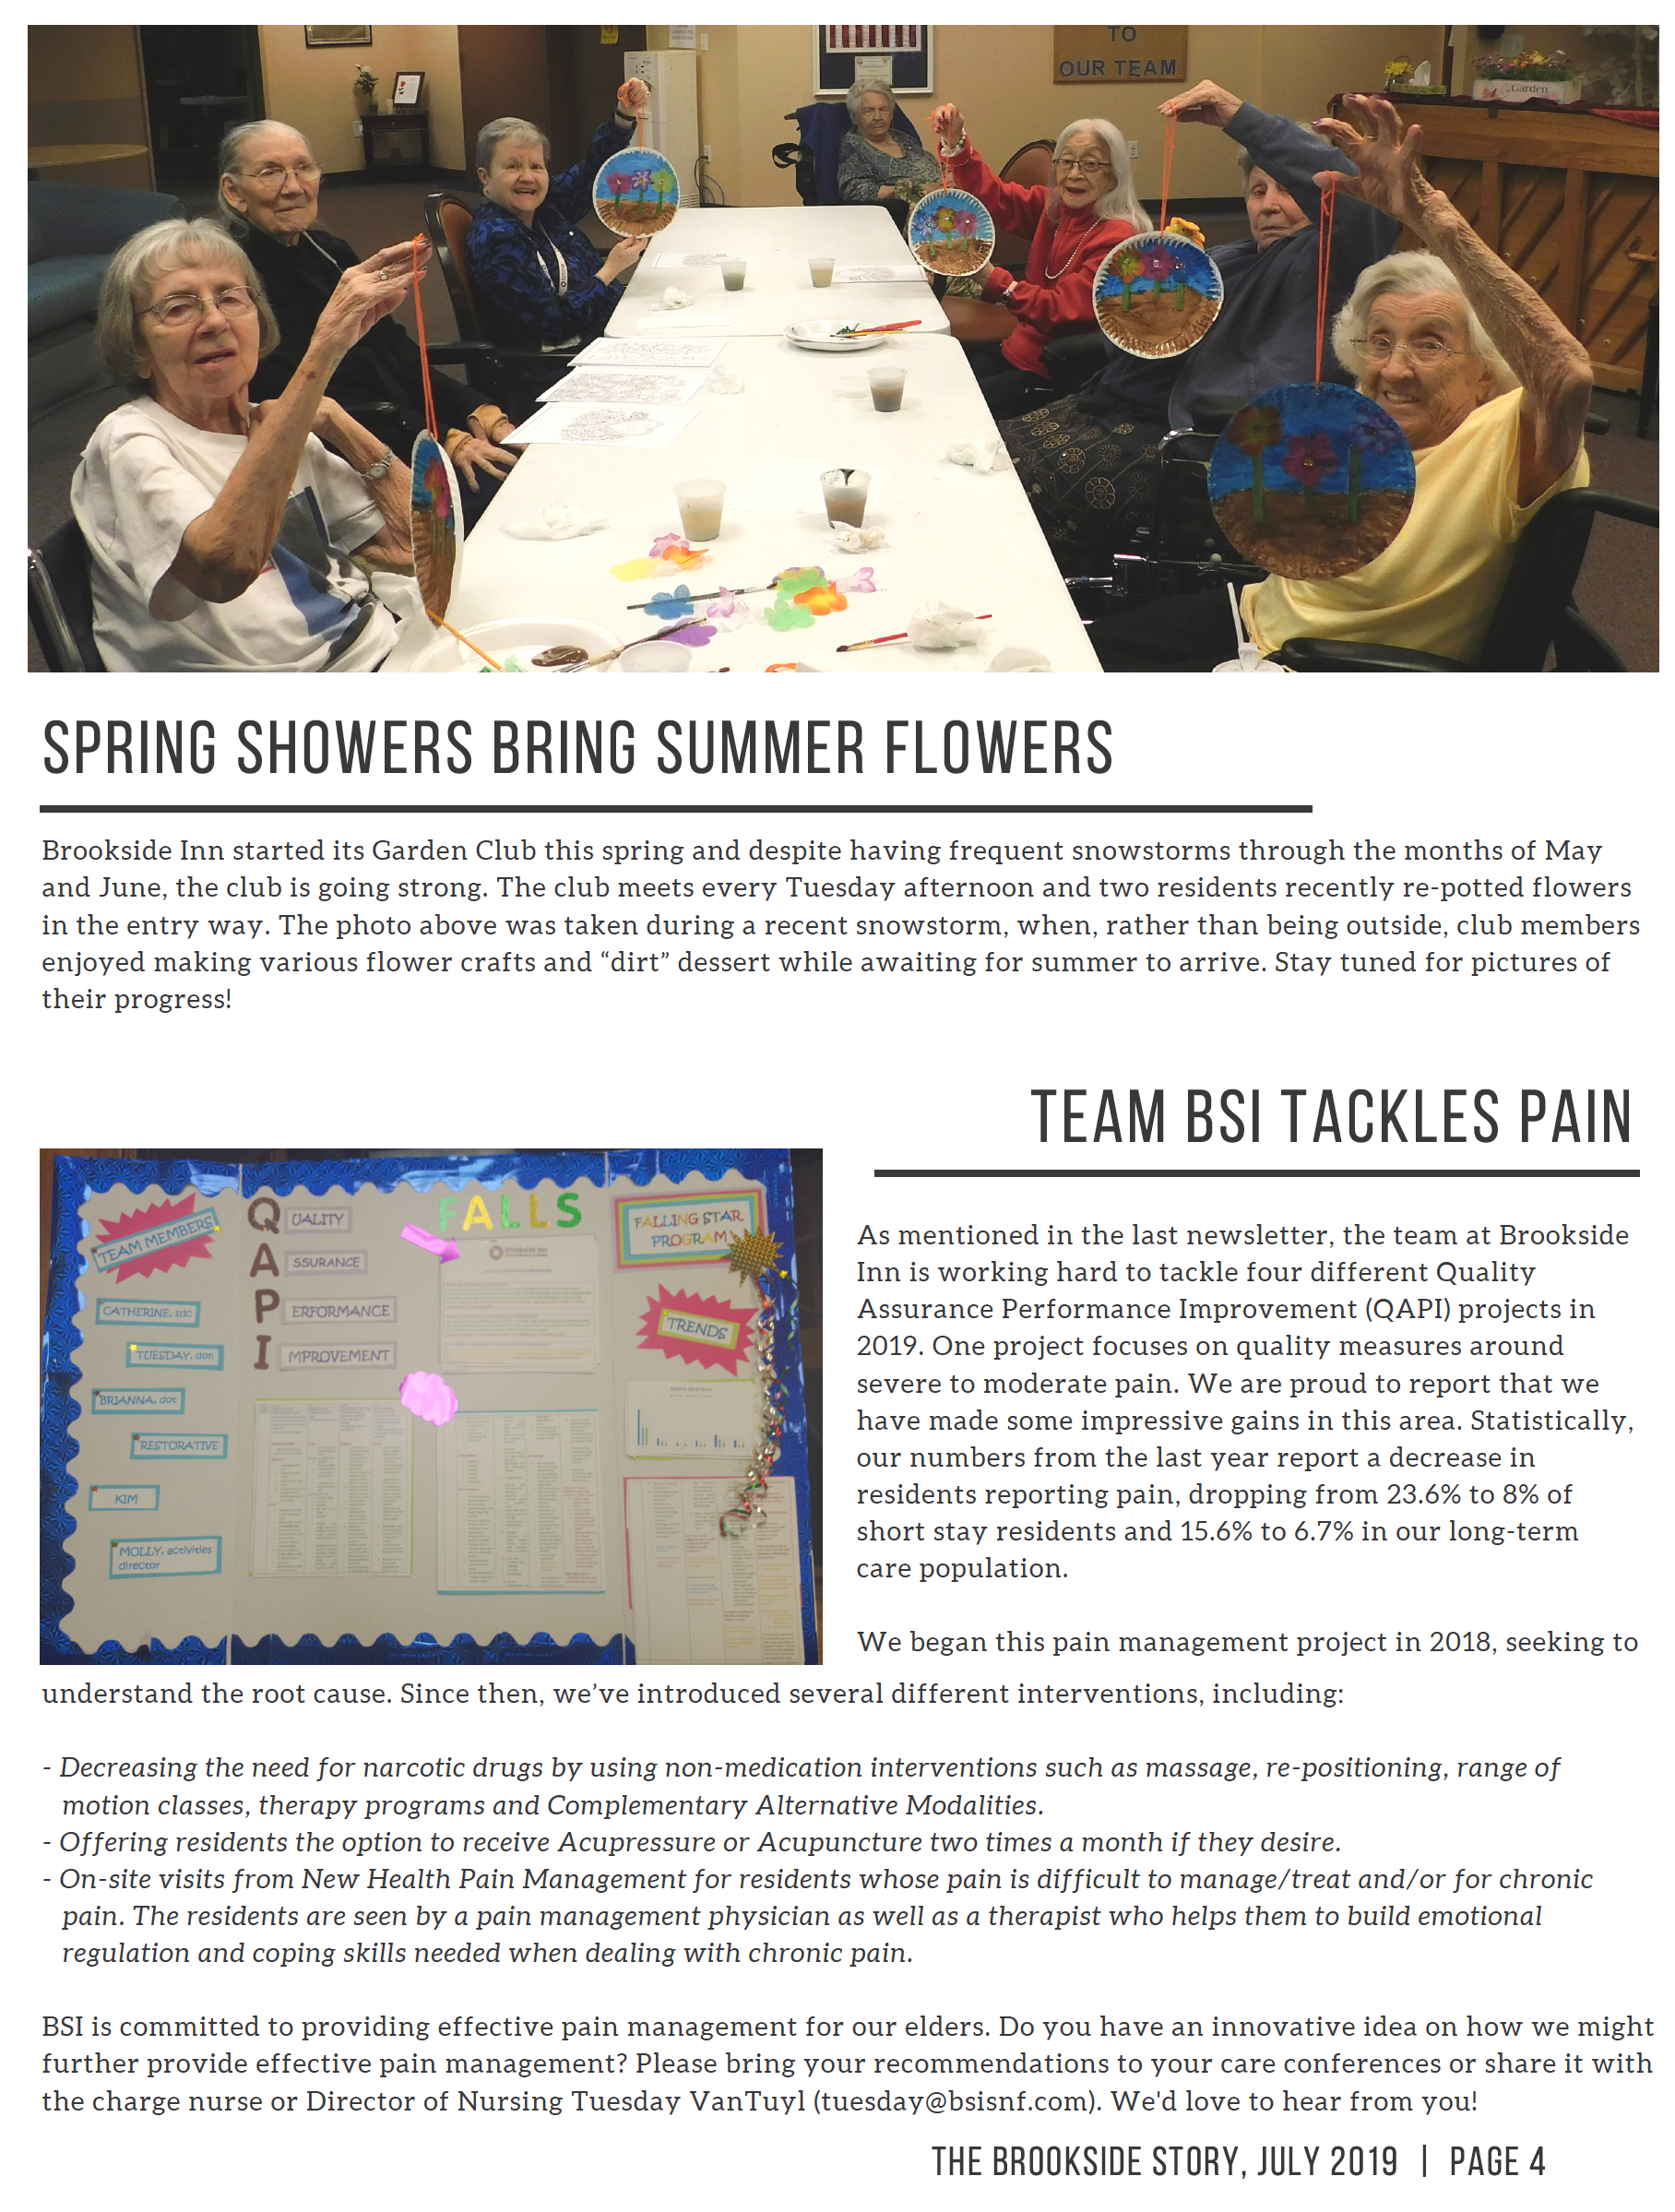 Page 4 - Showers bring summer flowers that the residents are making. Staff is working on quality assurance performance improvement.